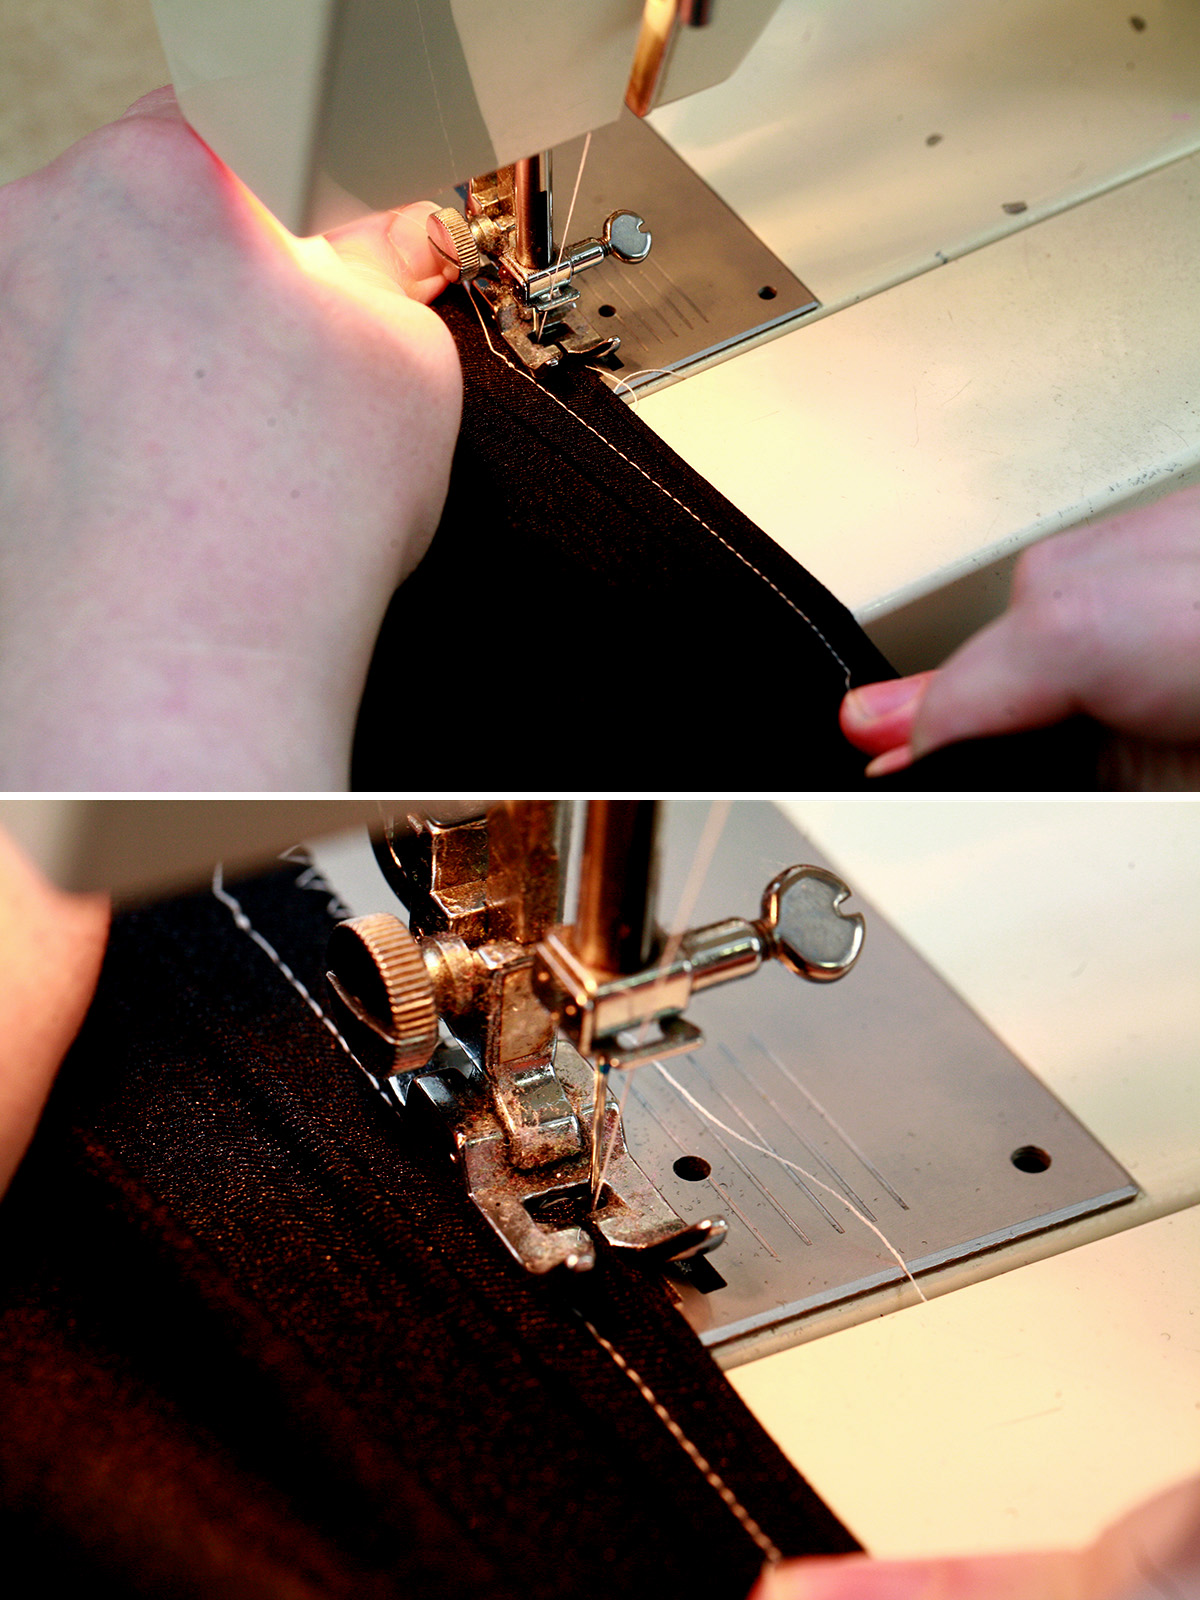 A two piece compilation image, showing a piece of black spandex fabric being guided through a sewing machine.